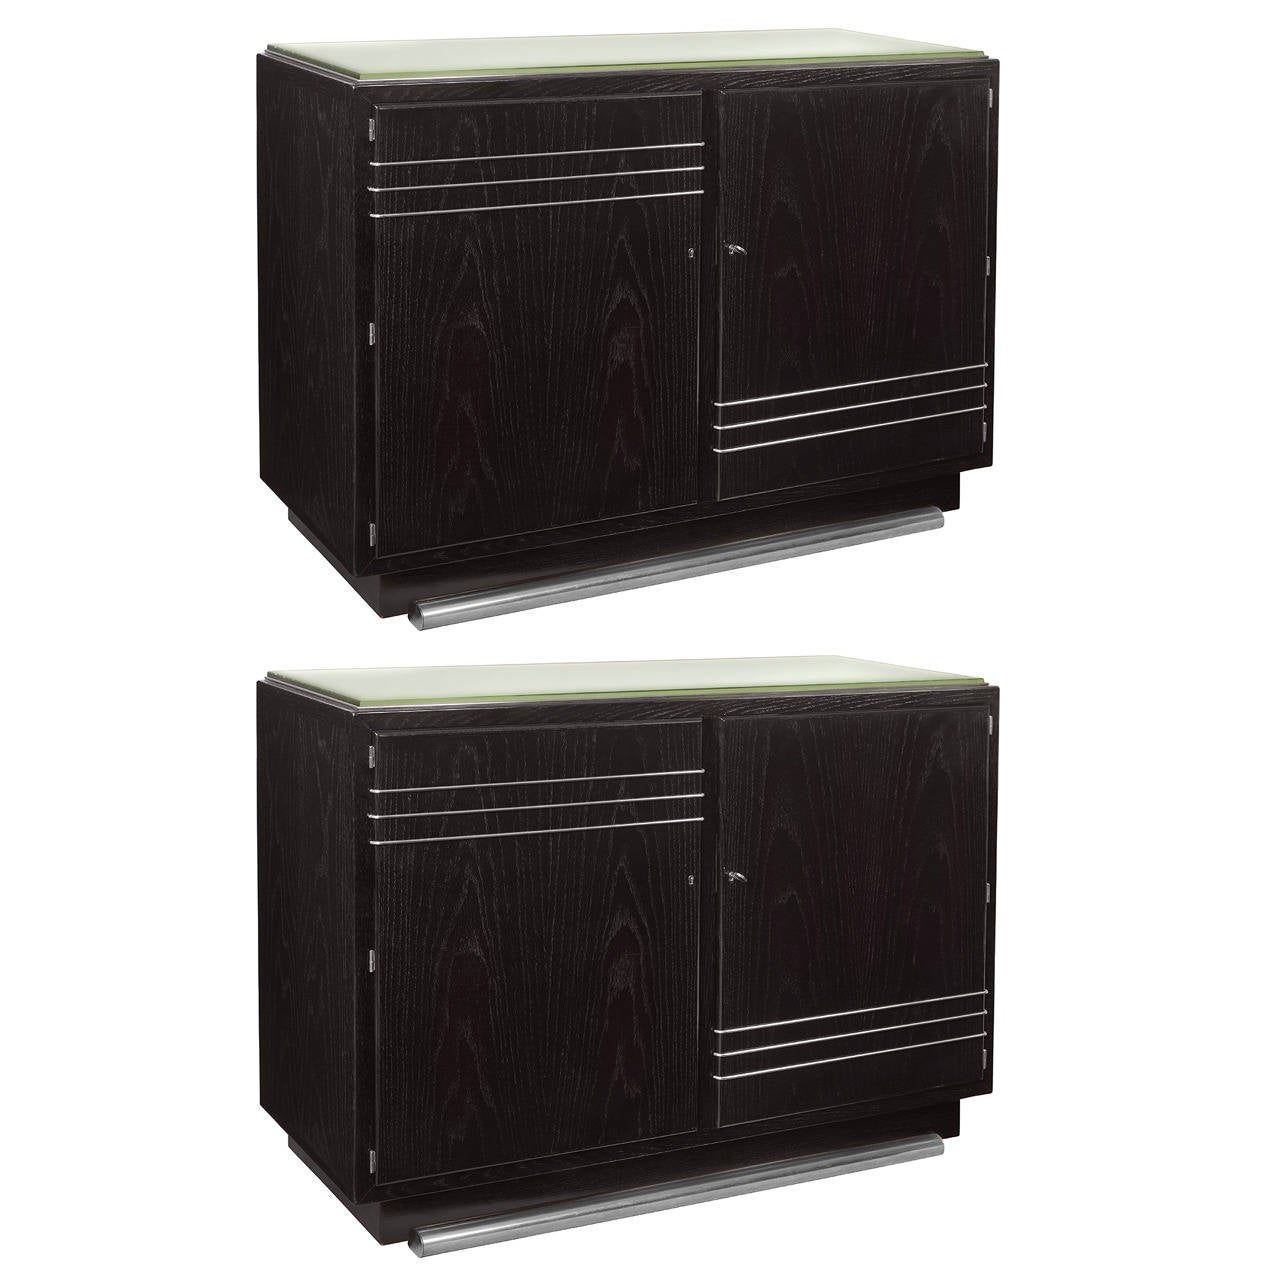 oak cabinets pair of deco ebonized oak cabinets at 1stdibs 23831